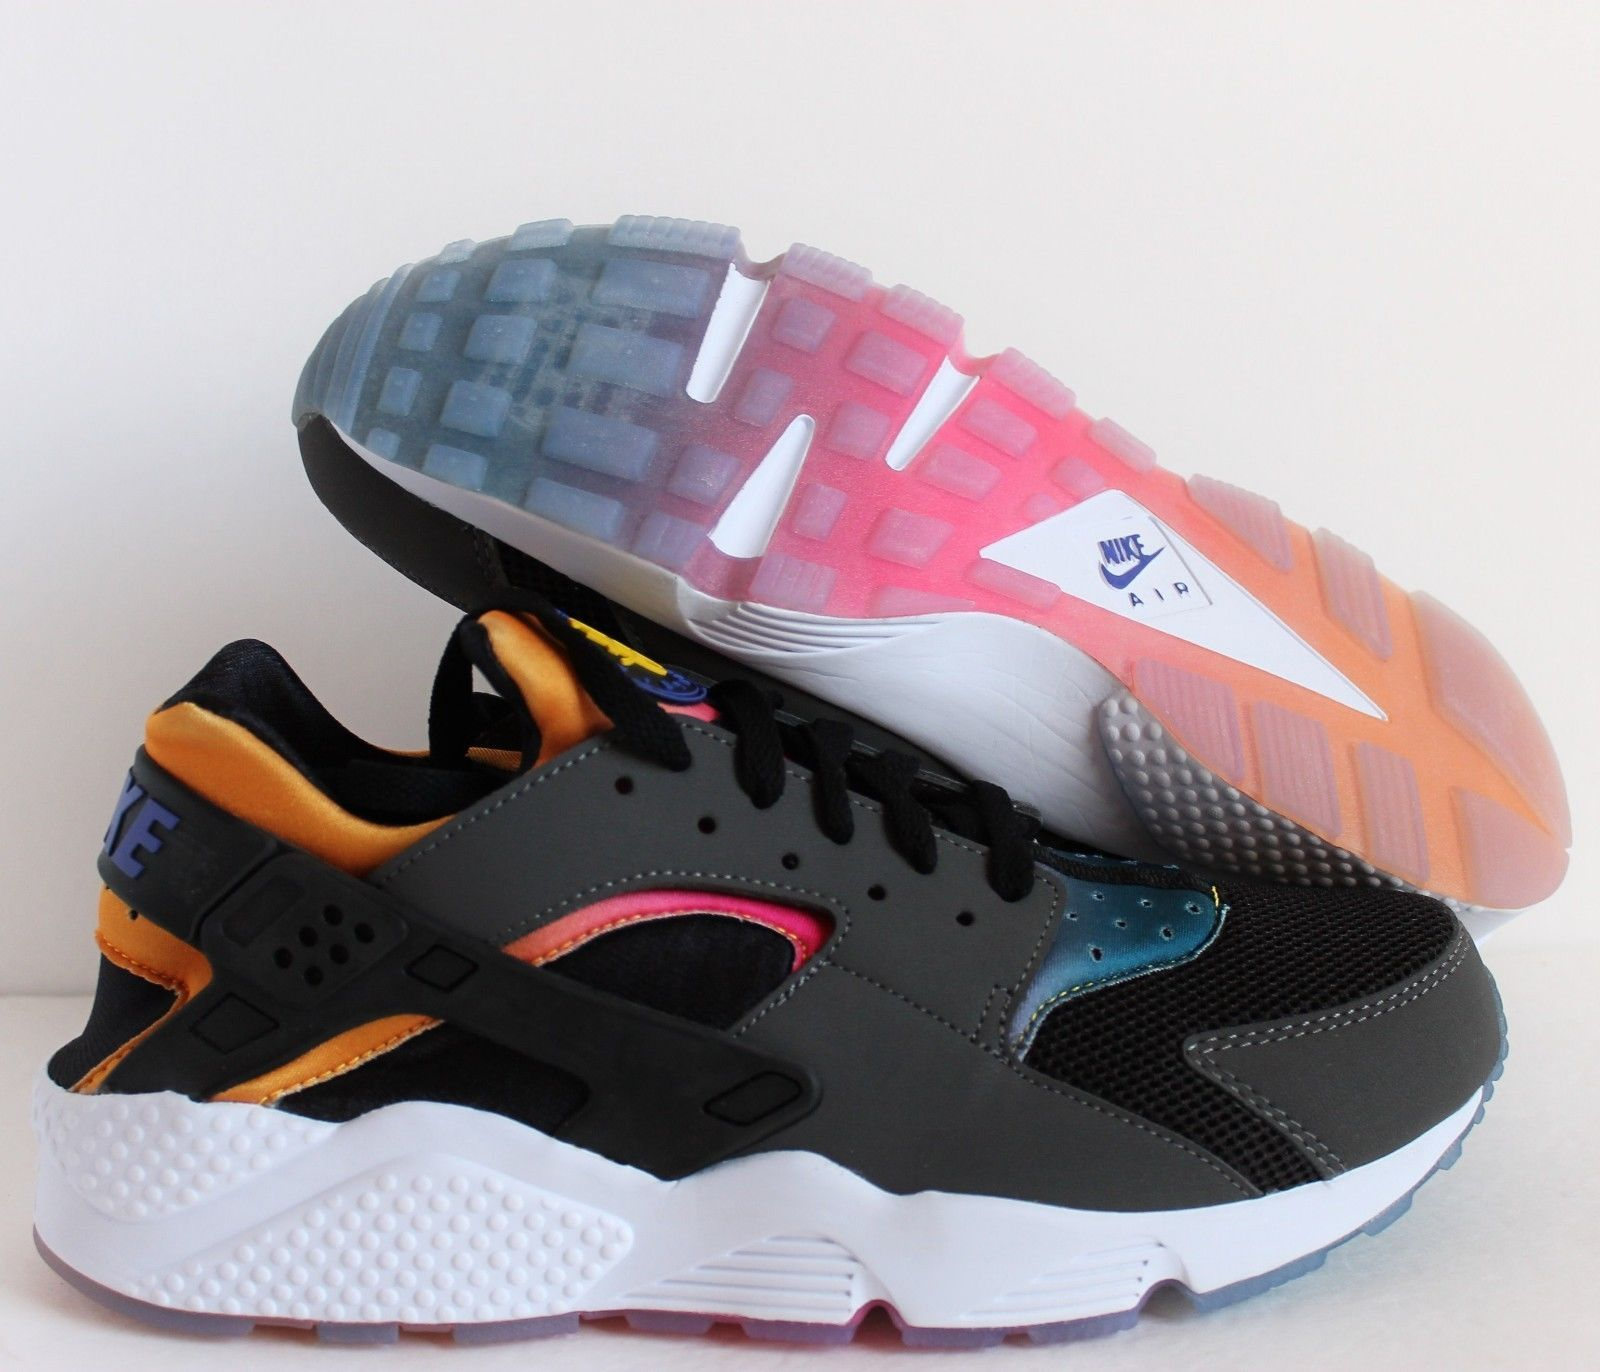 5473d838525d NIKE AIR HUARACHE RUN SD BLACK-VIOLET-TOUR YELLOW-PINK POW SZ 10.5  724764- 005